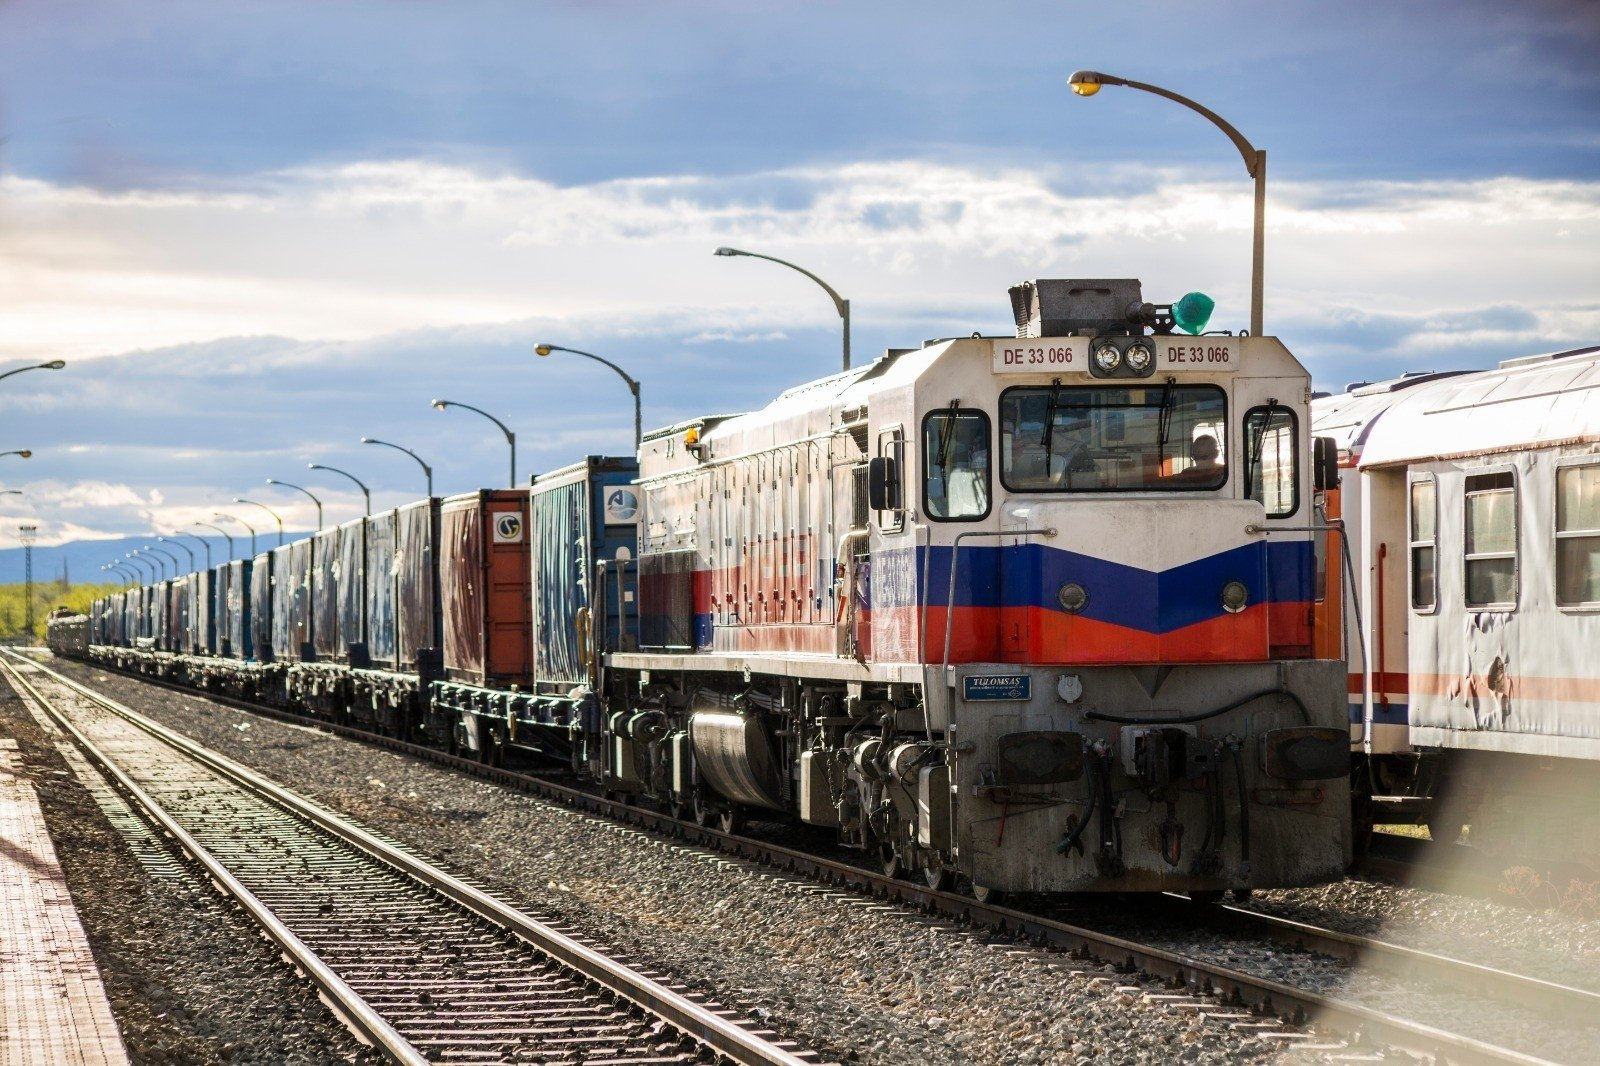 A freight train operating between Turkey and Iran stops at an undisclosed location, Jan. 26, 2021. (IHA Photo)